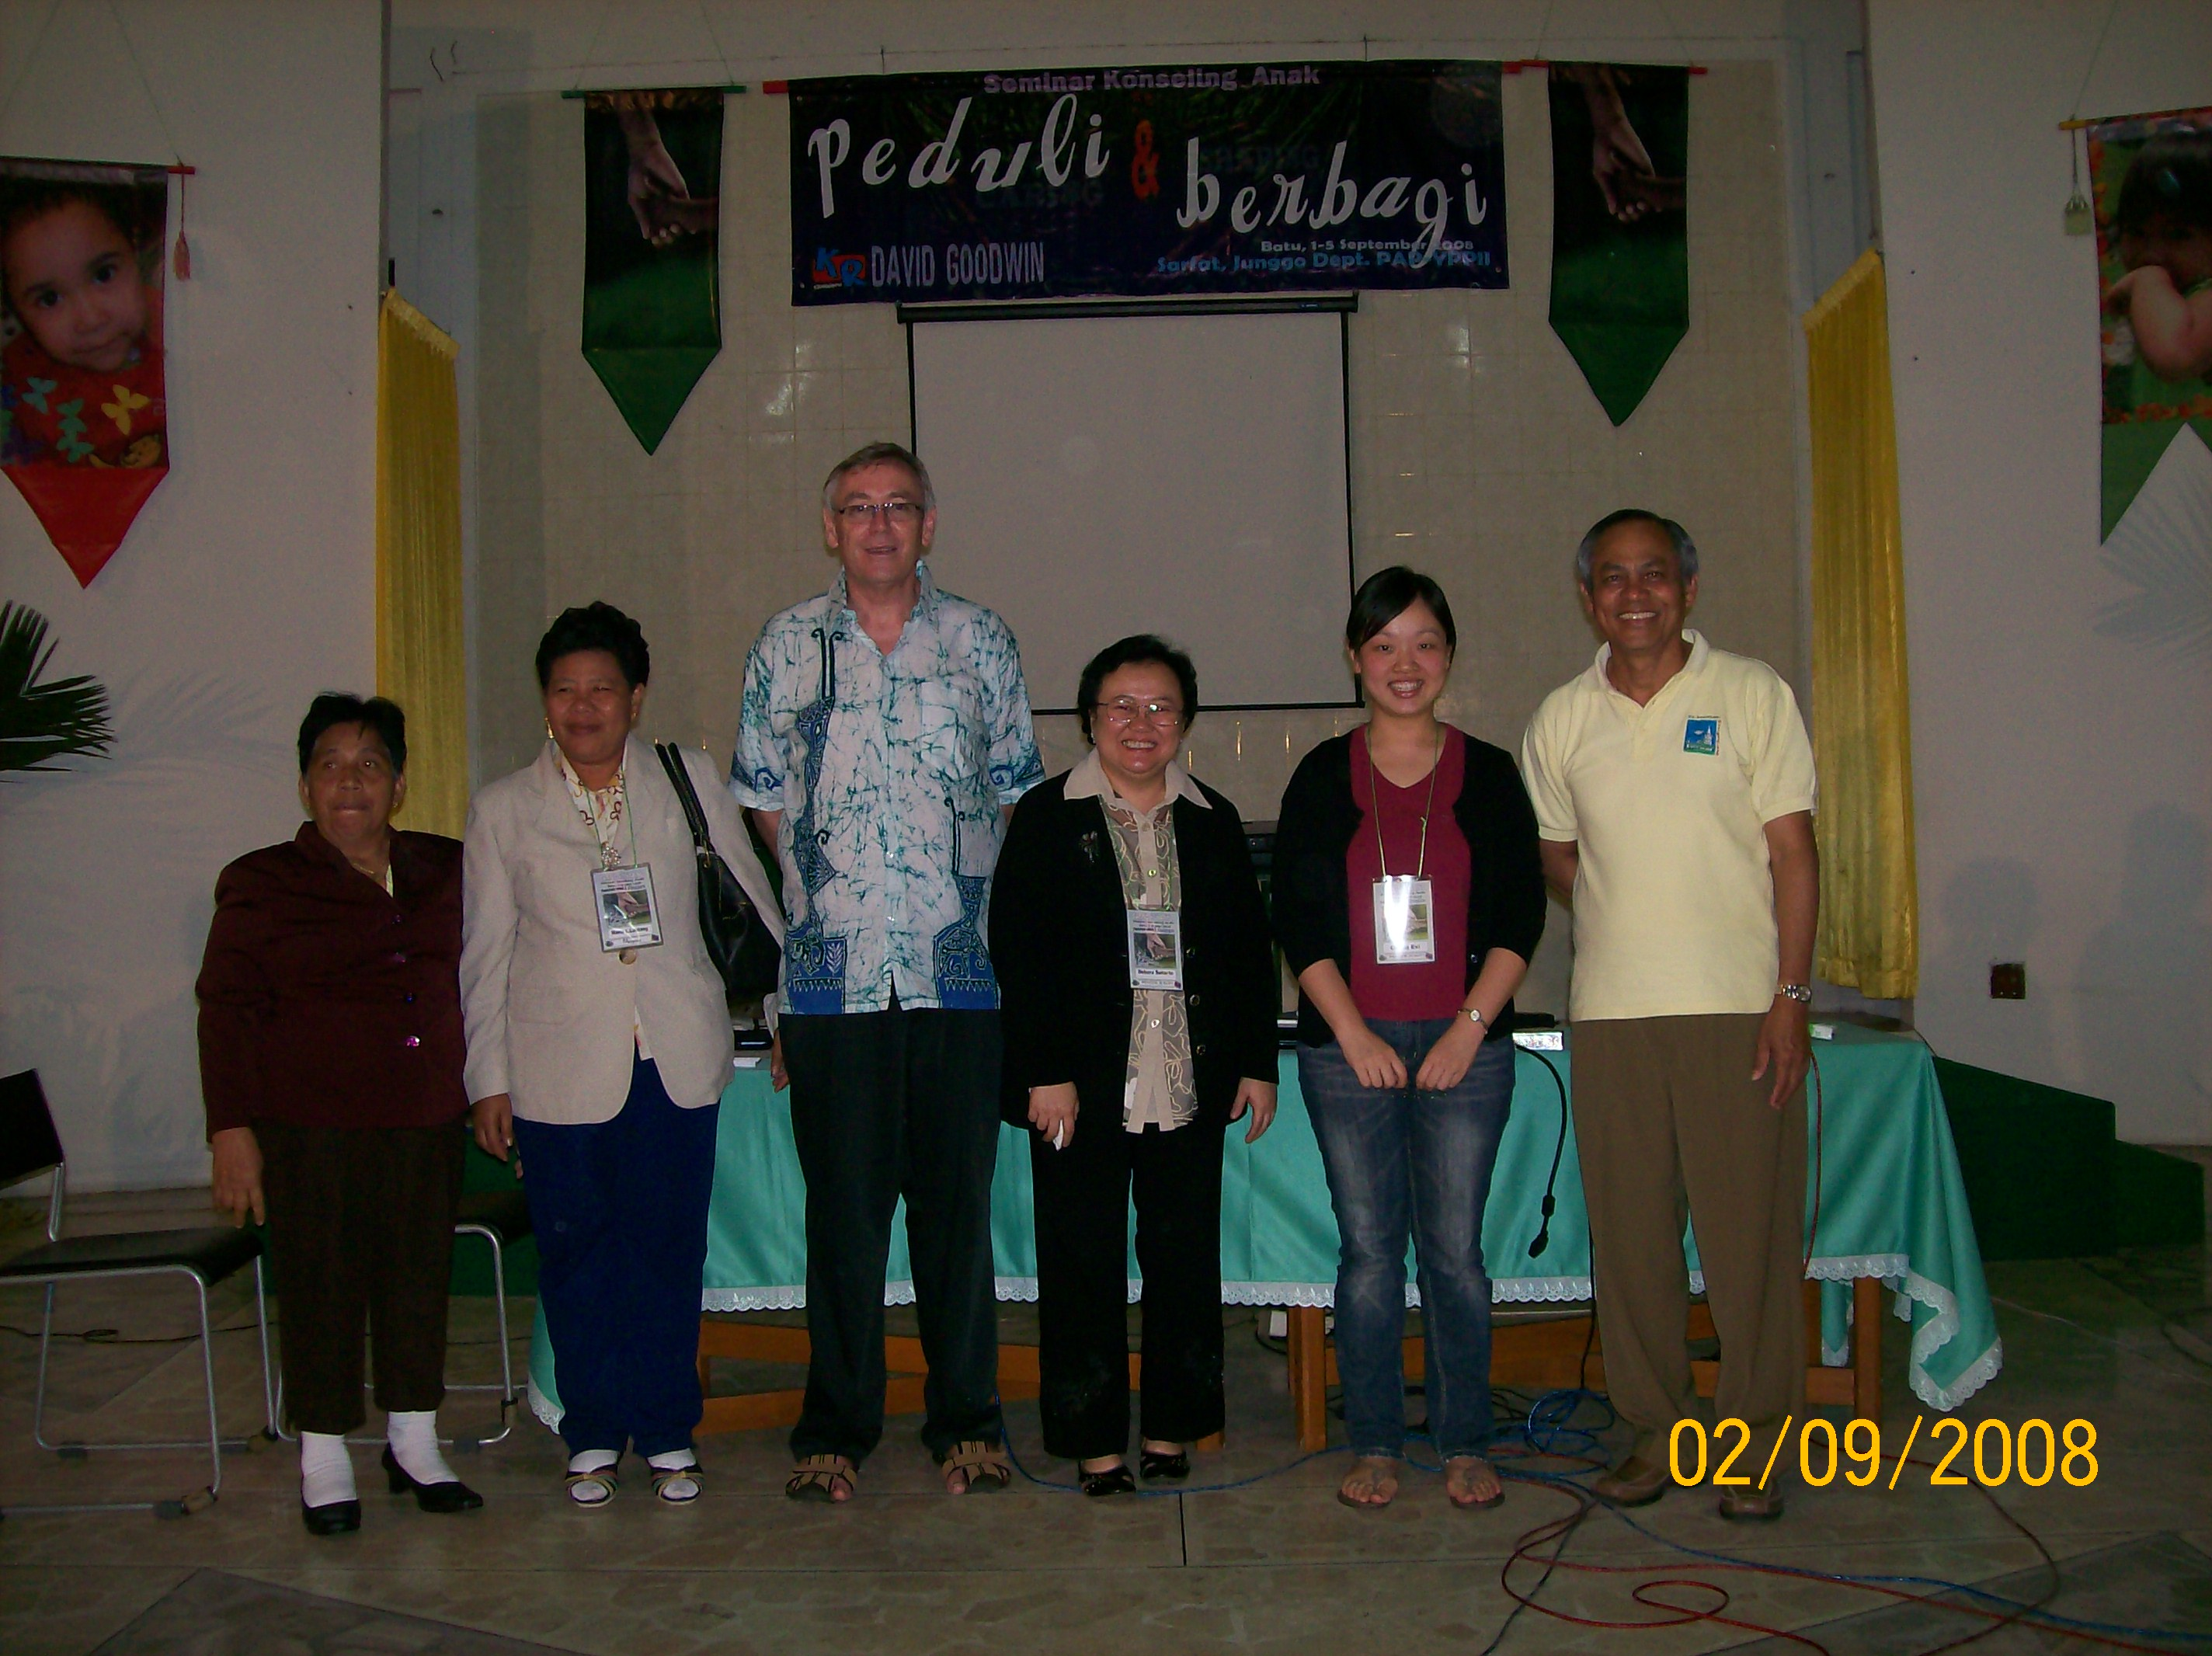 with David Goodwin and other participants